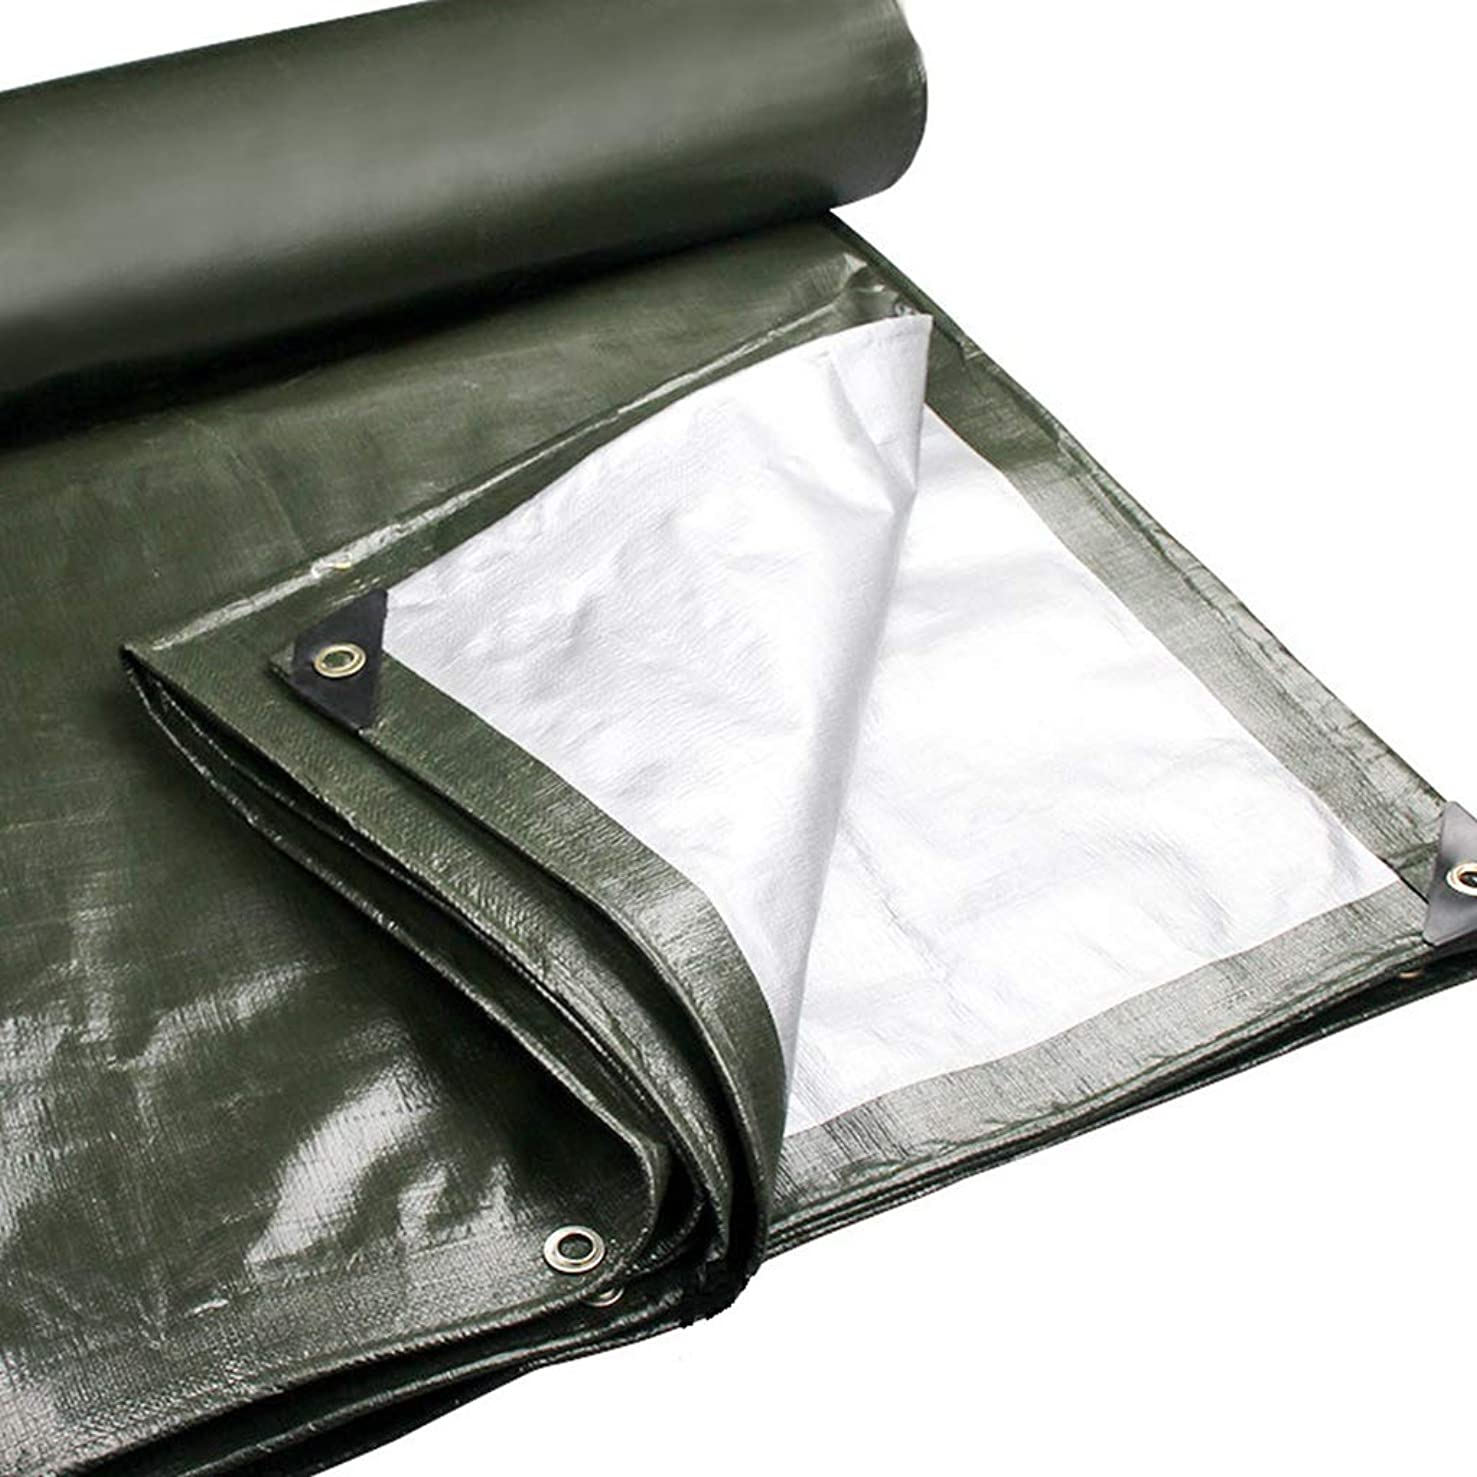 ALWUD Padded Waterproof Tarp Cover, Heavy Duty Tarp Rainproof Camping Tarps Car Multi-Purpose Reversible with Grommets and Reinforced Edges,Army Green_13x16 Feet